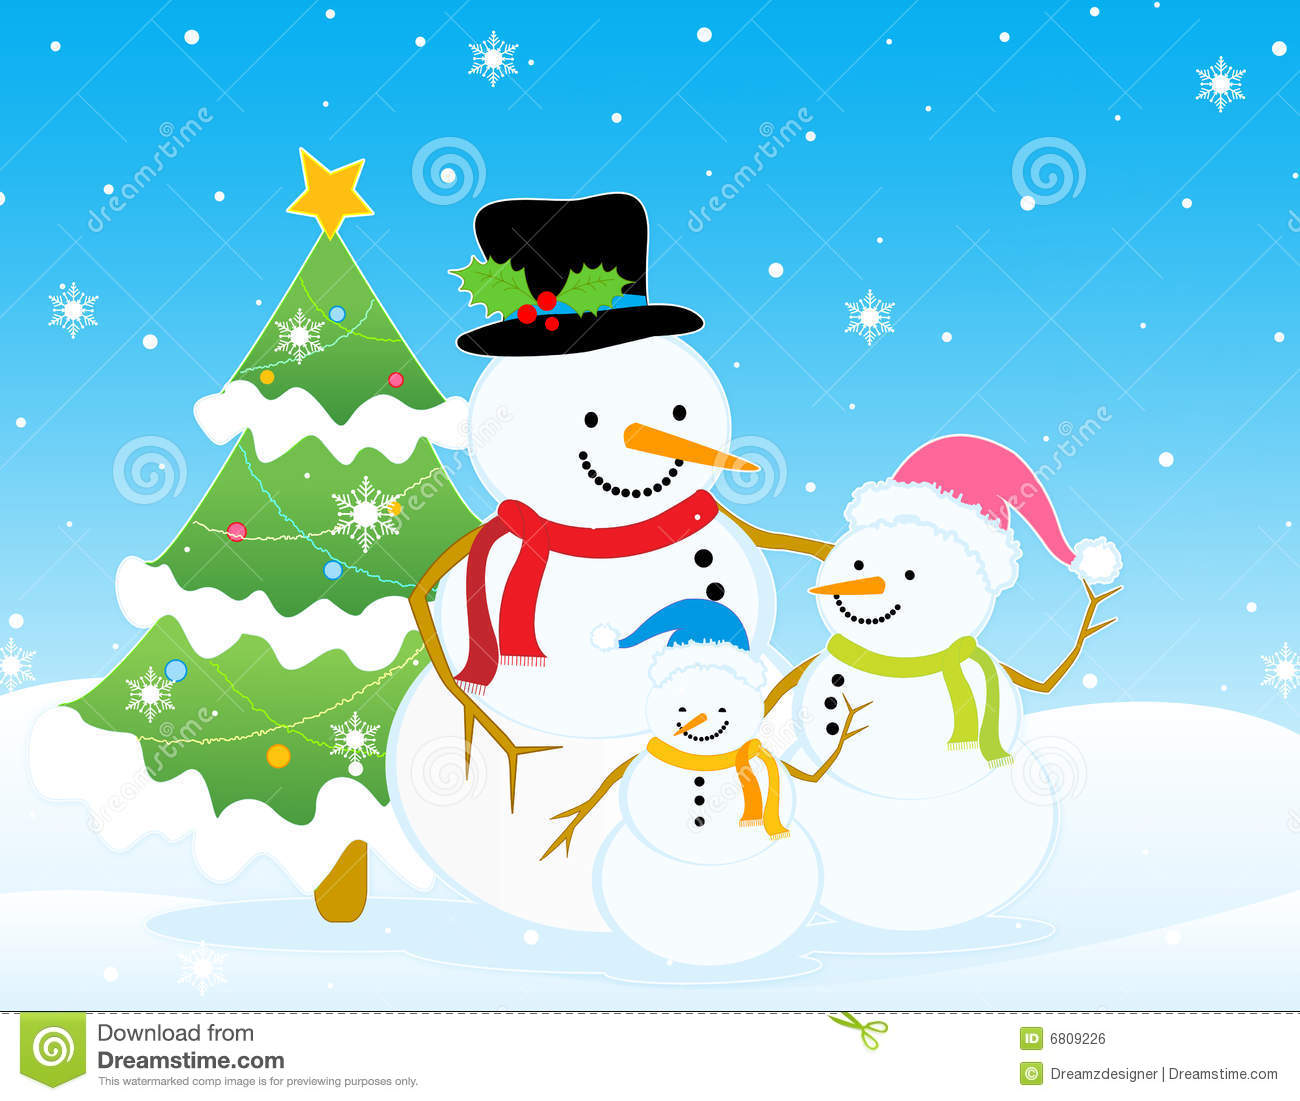 snowman family wallpaper - photo #24